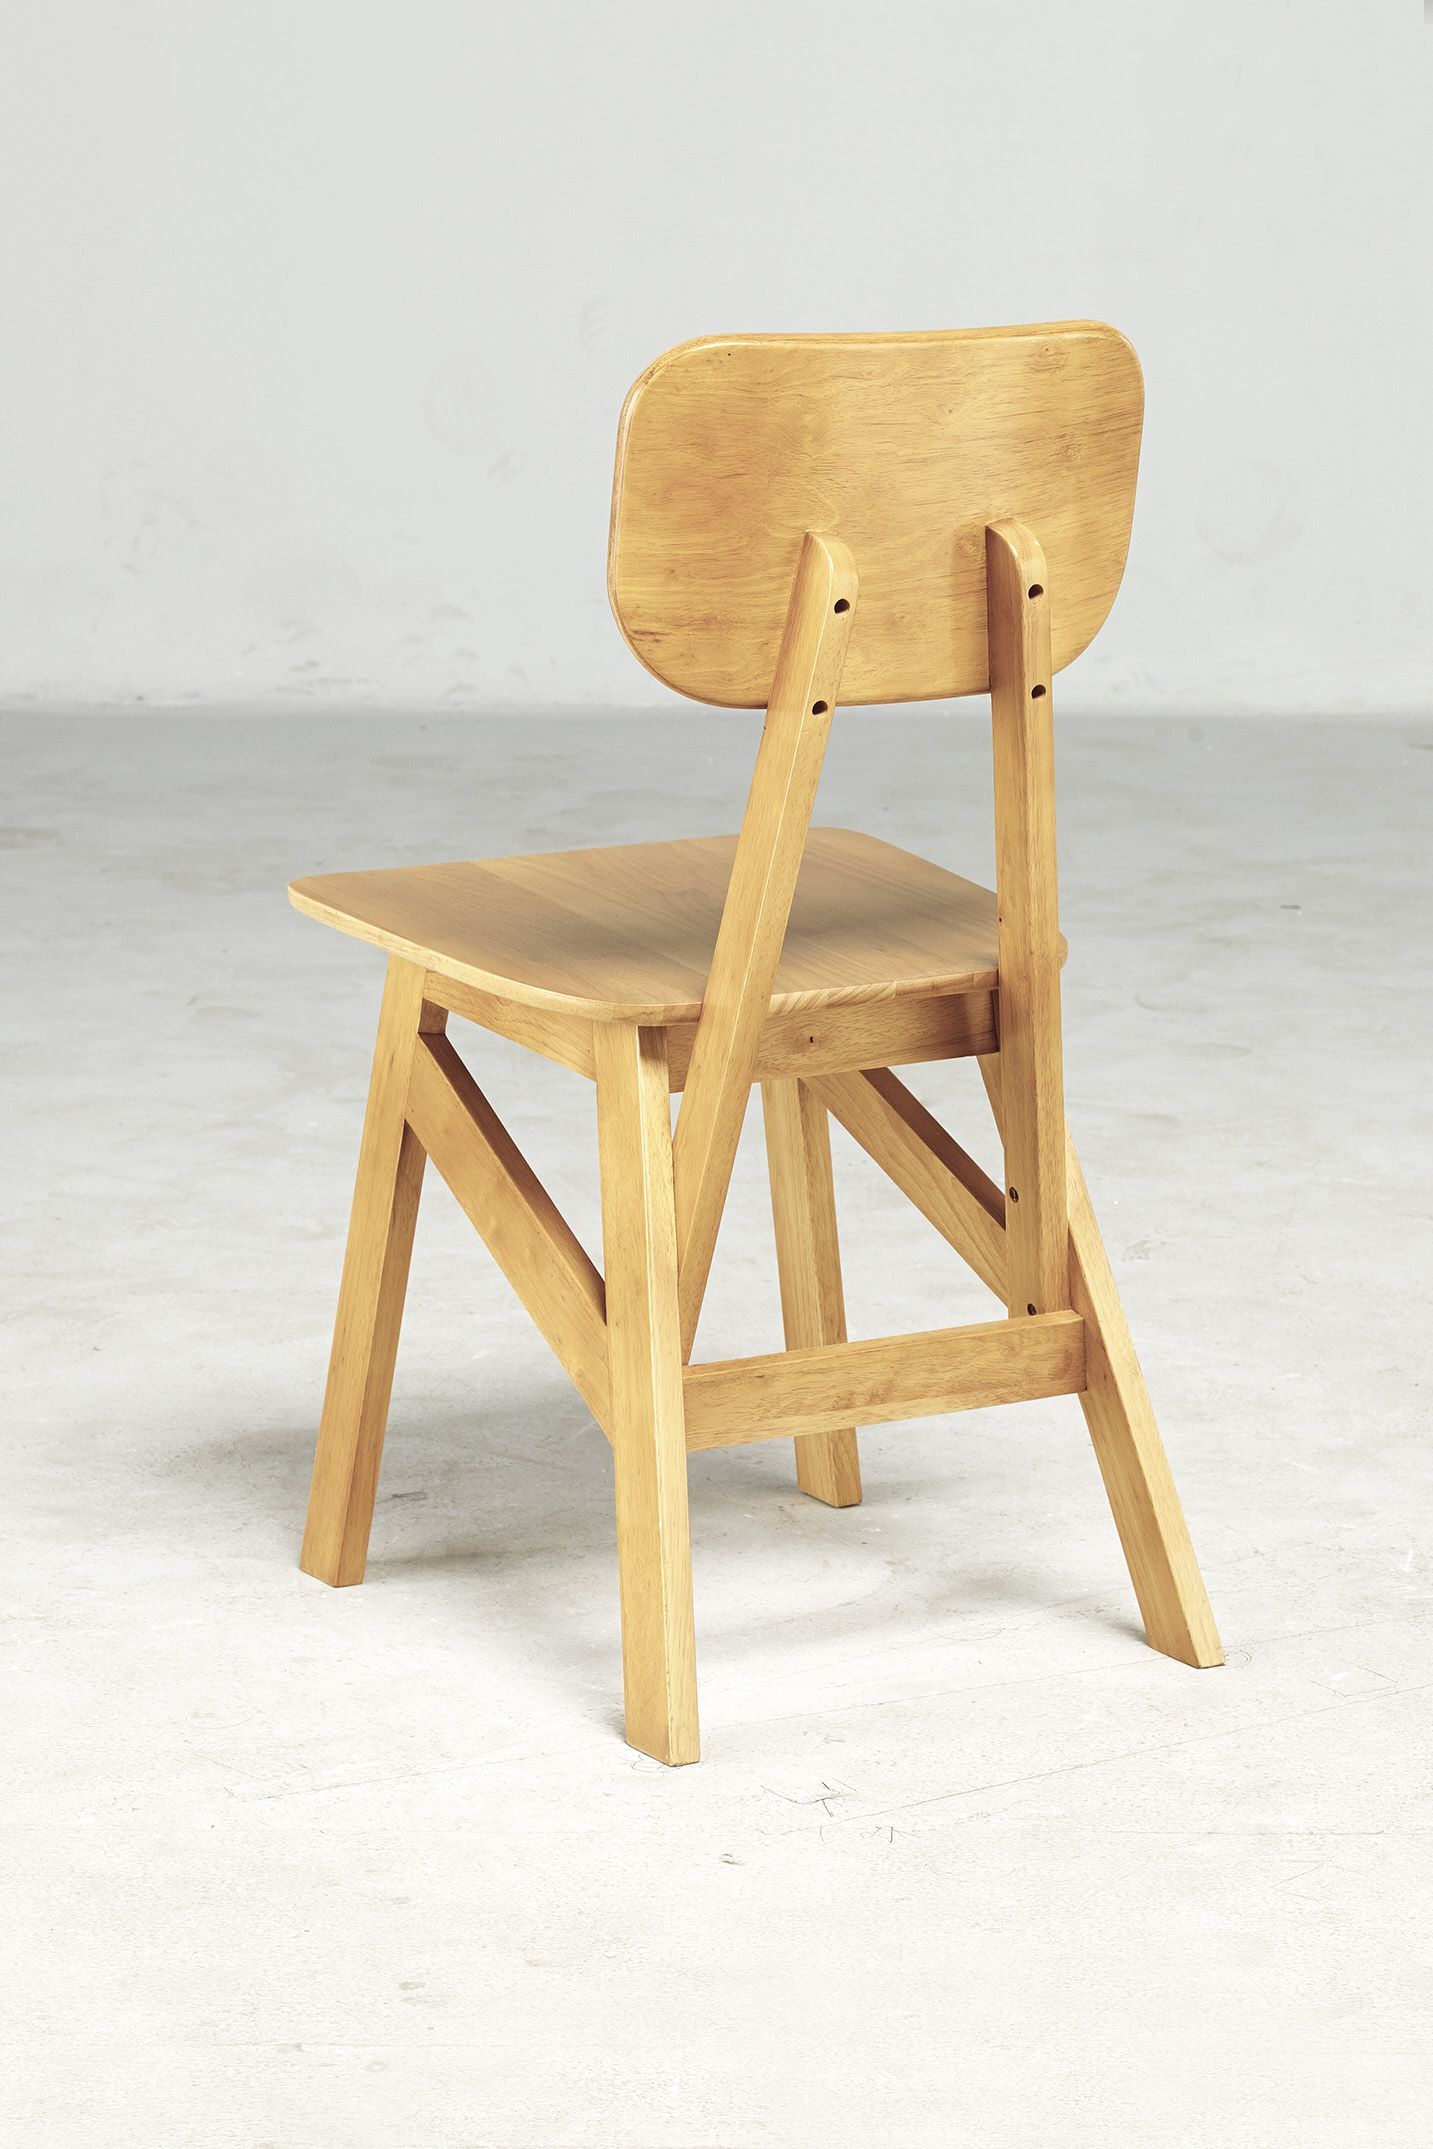 Chair design in rubber wood very sturdy comfortable modern joachim poirier